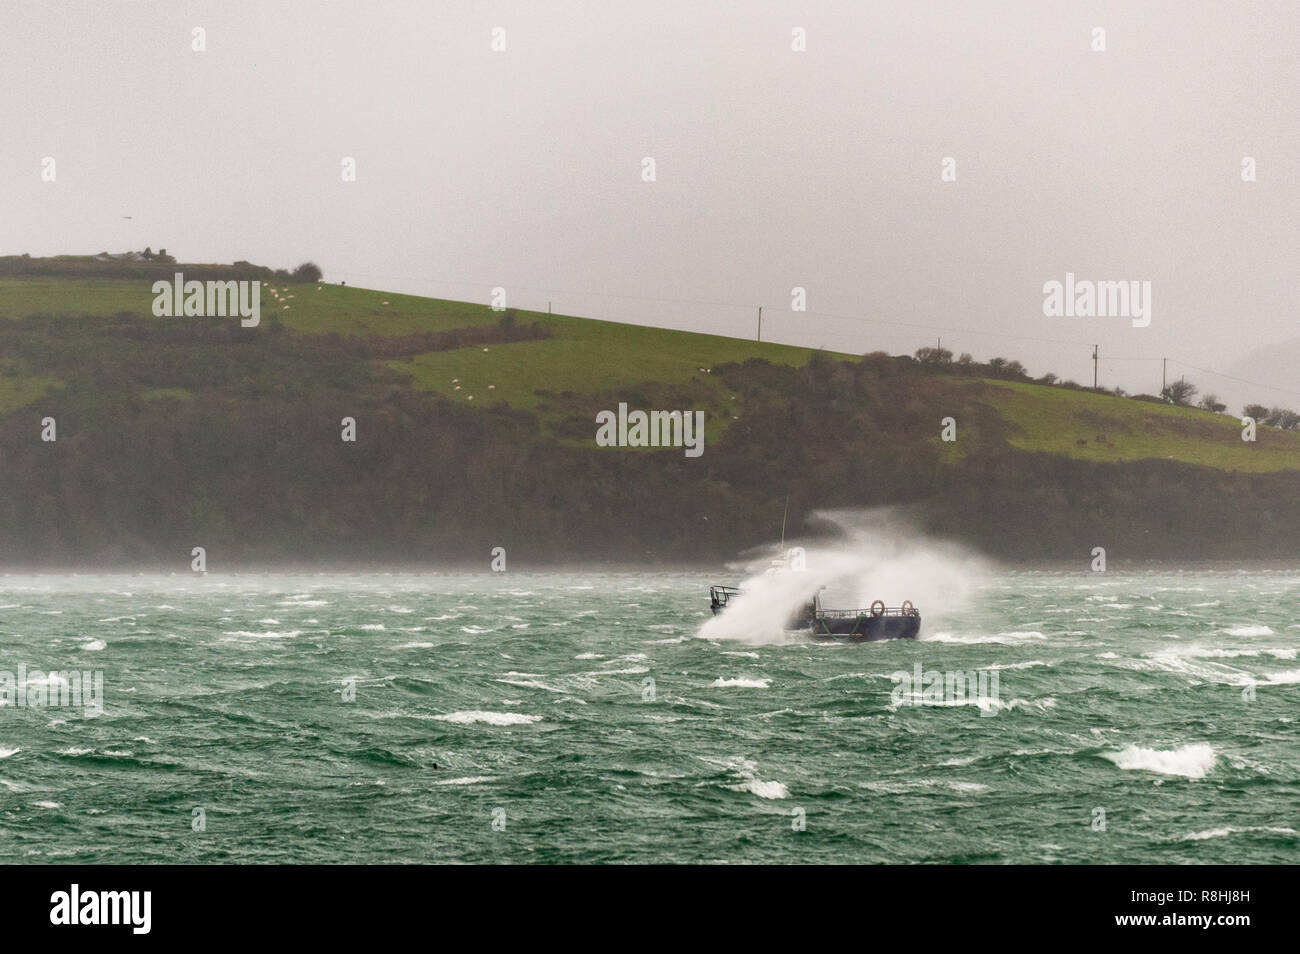 bantry-west-cork-ireland-15th-dec-2018-the-bantry-to-whiddy-island-ferry-makes-the-trip-in-atrocious-weather-conditions-during-storm-deirdre-the-orange-weather-warning-for-wexford-donegal-cork-and-waterford-is-in-place-until-10pm-this-evening-credit-andy-gibsonalamy-live-news-R8HJ8H.jpg